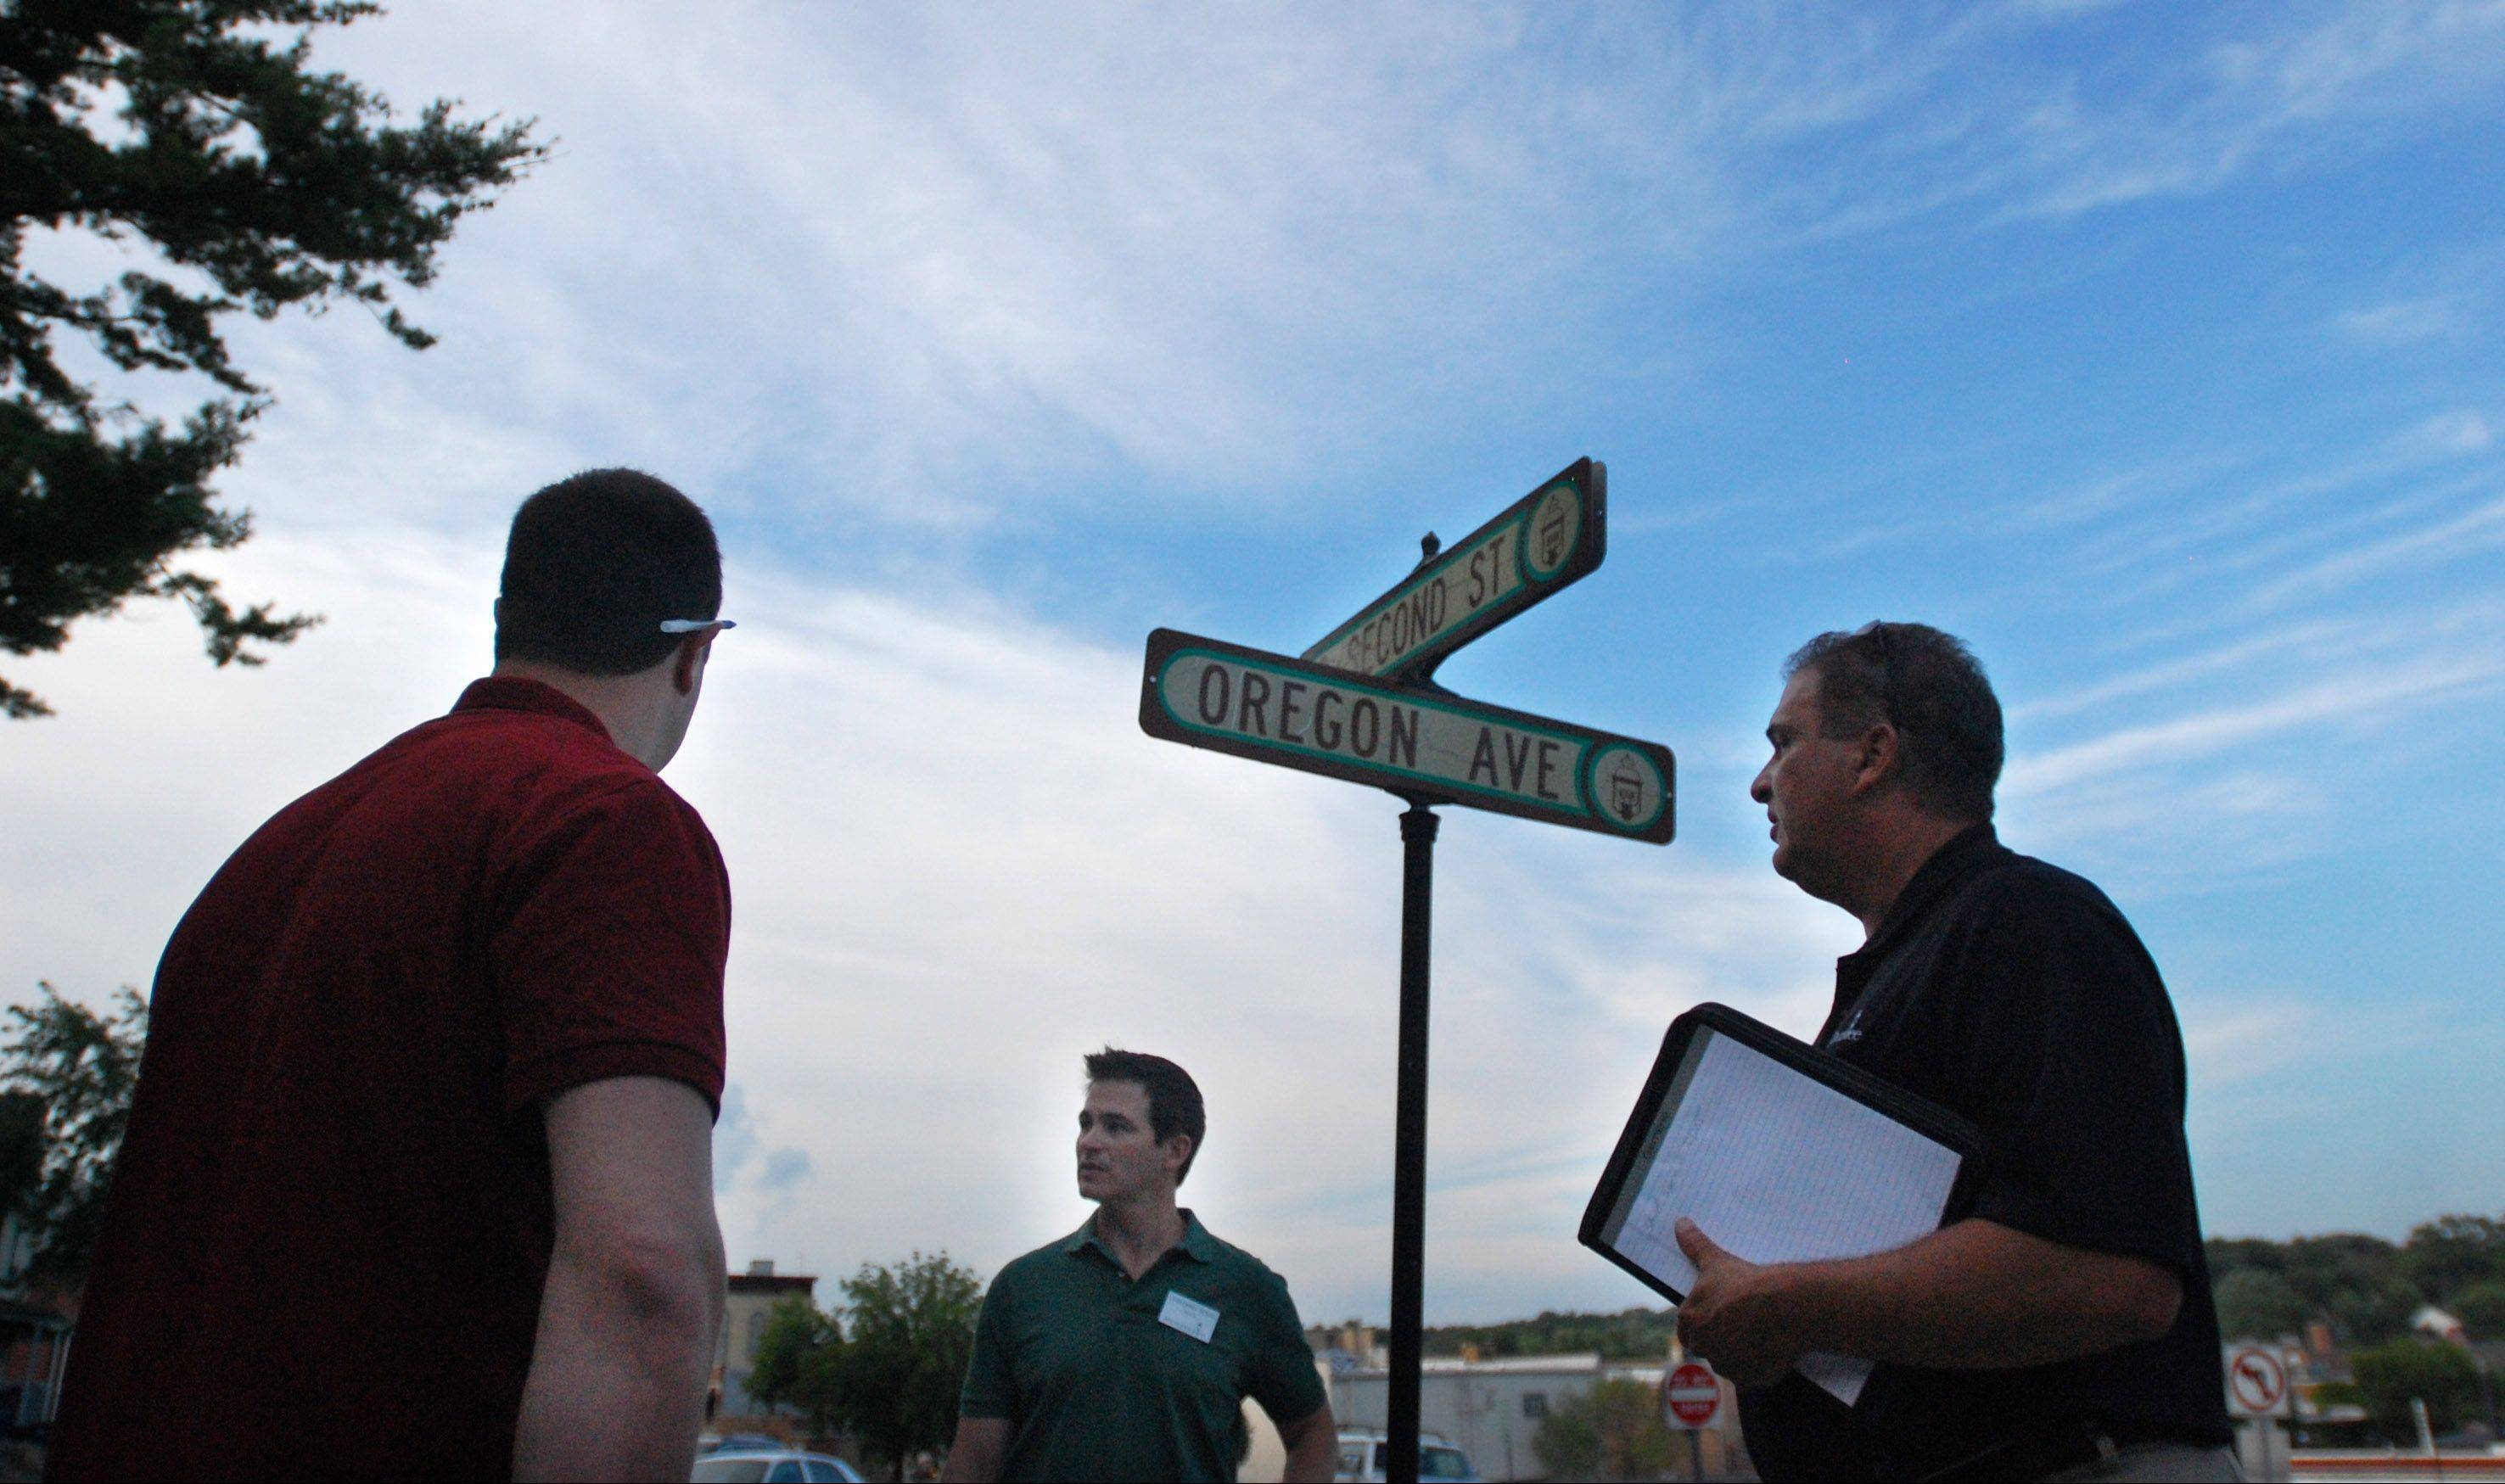 Trustee Daniel Wilbrant, Village President Chris Nelson and Village Manager Joe Cavallaro assess a street sign in West Dundee as apart of their community walking tour on Monday. The board members were in search of property maintenance issues, things that can be repaired and other neighborhood issues.